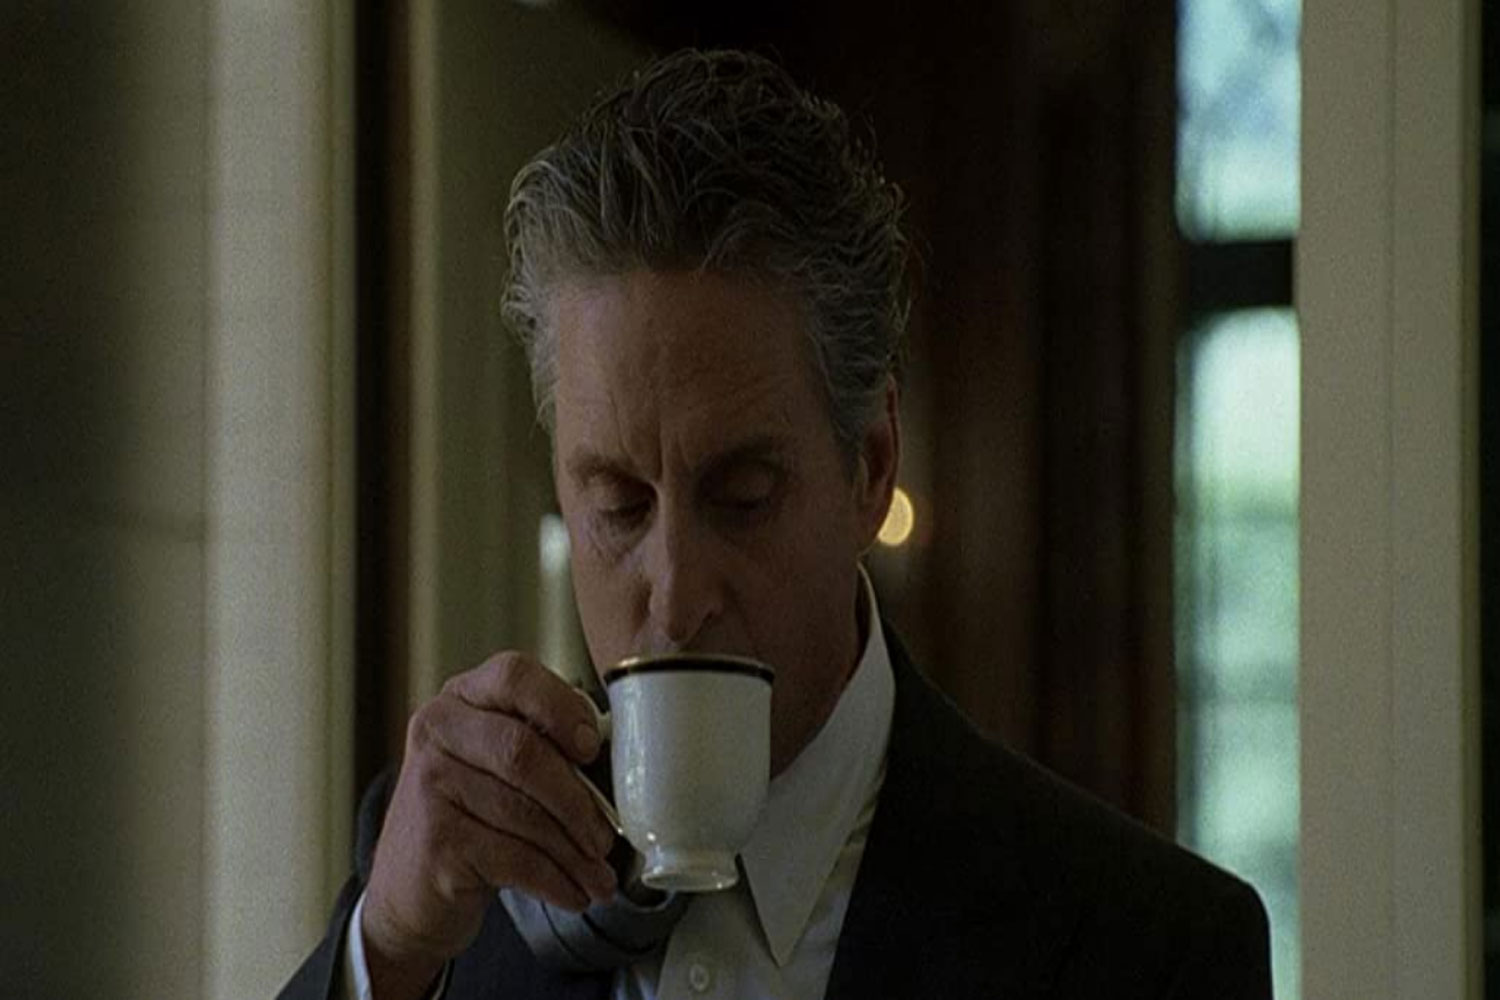 Michael douglas in The Game drinking coffee with his tie over his shoulder